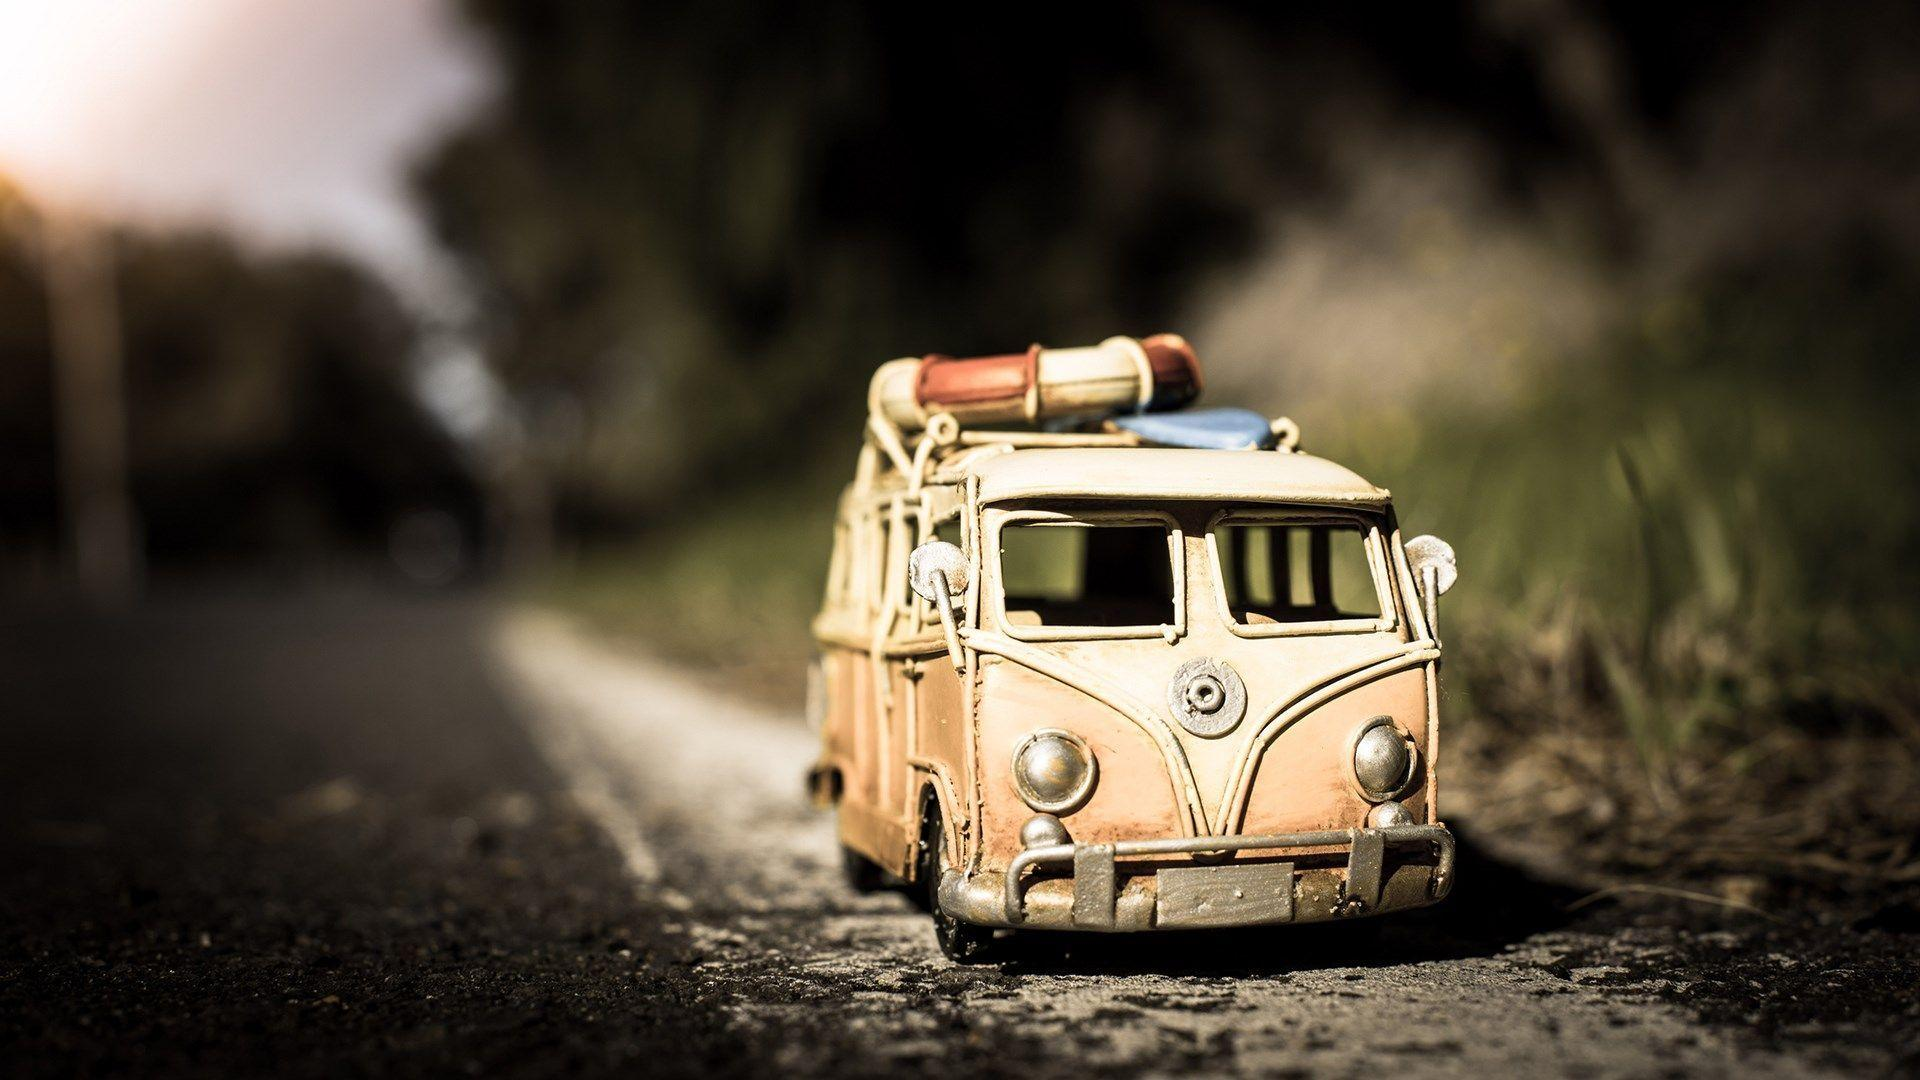 Volkswagen Bus Wallpapers Desktop